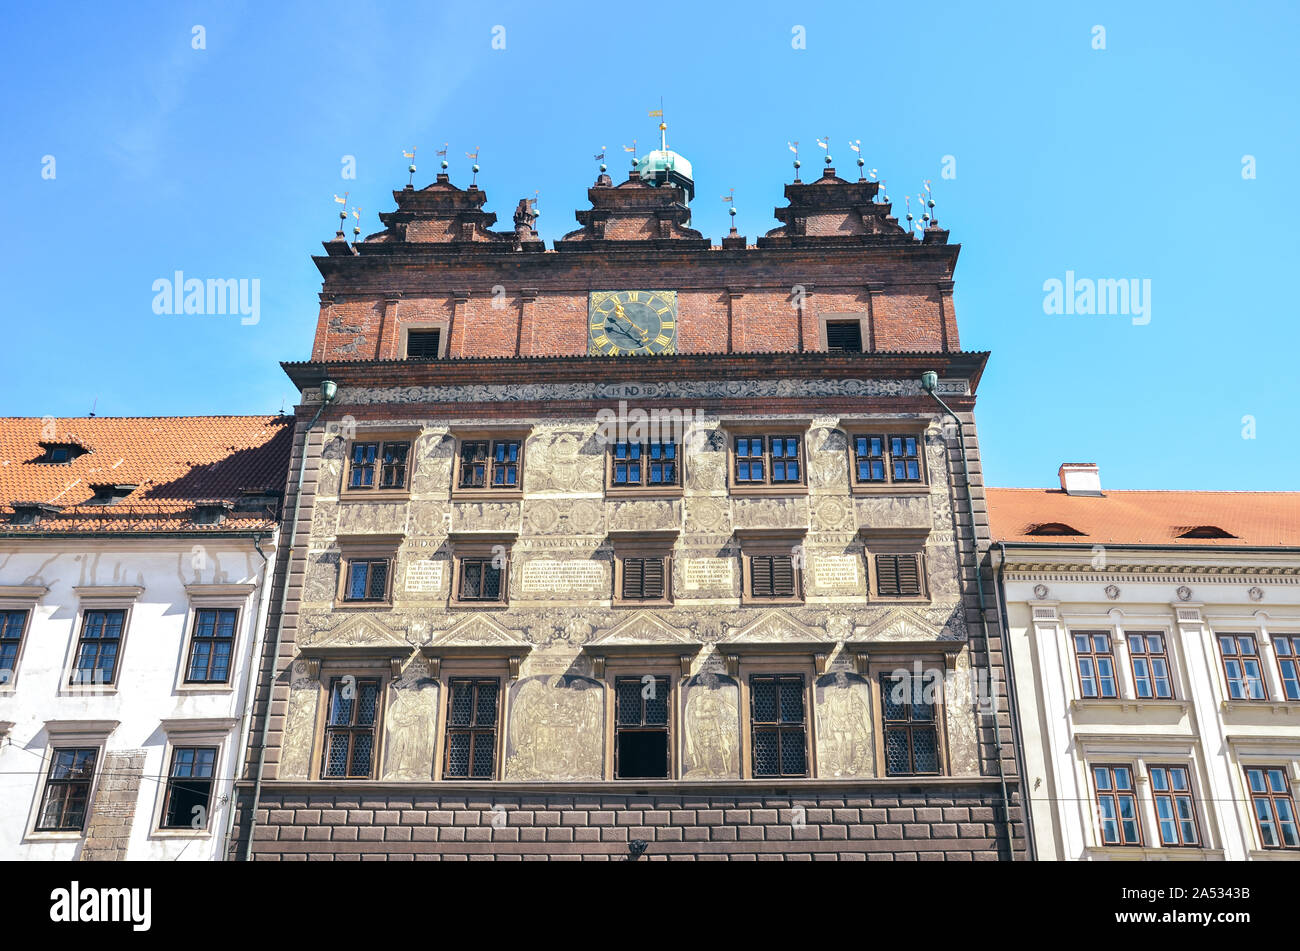 The Rennaisance City Hall on the main square in Pilsen, Bohemia, Czech Republic. The seat of the city council. Front side view. The fourth-largest city in Czechia. Historical building. Stock Photo